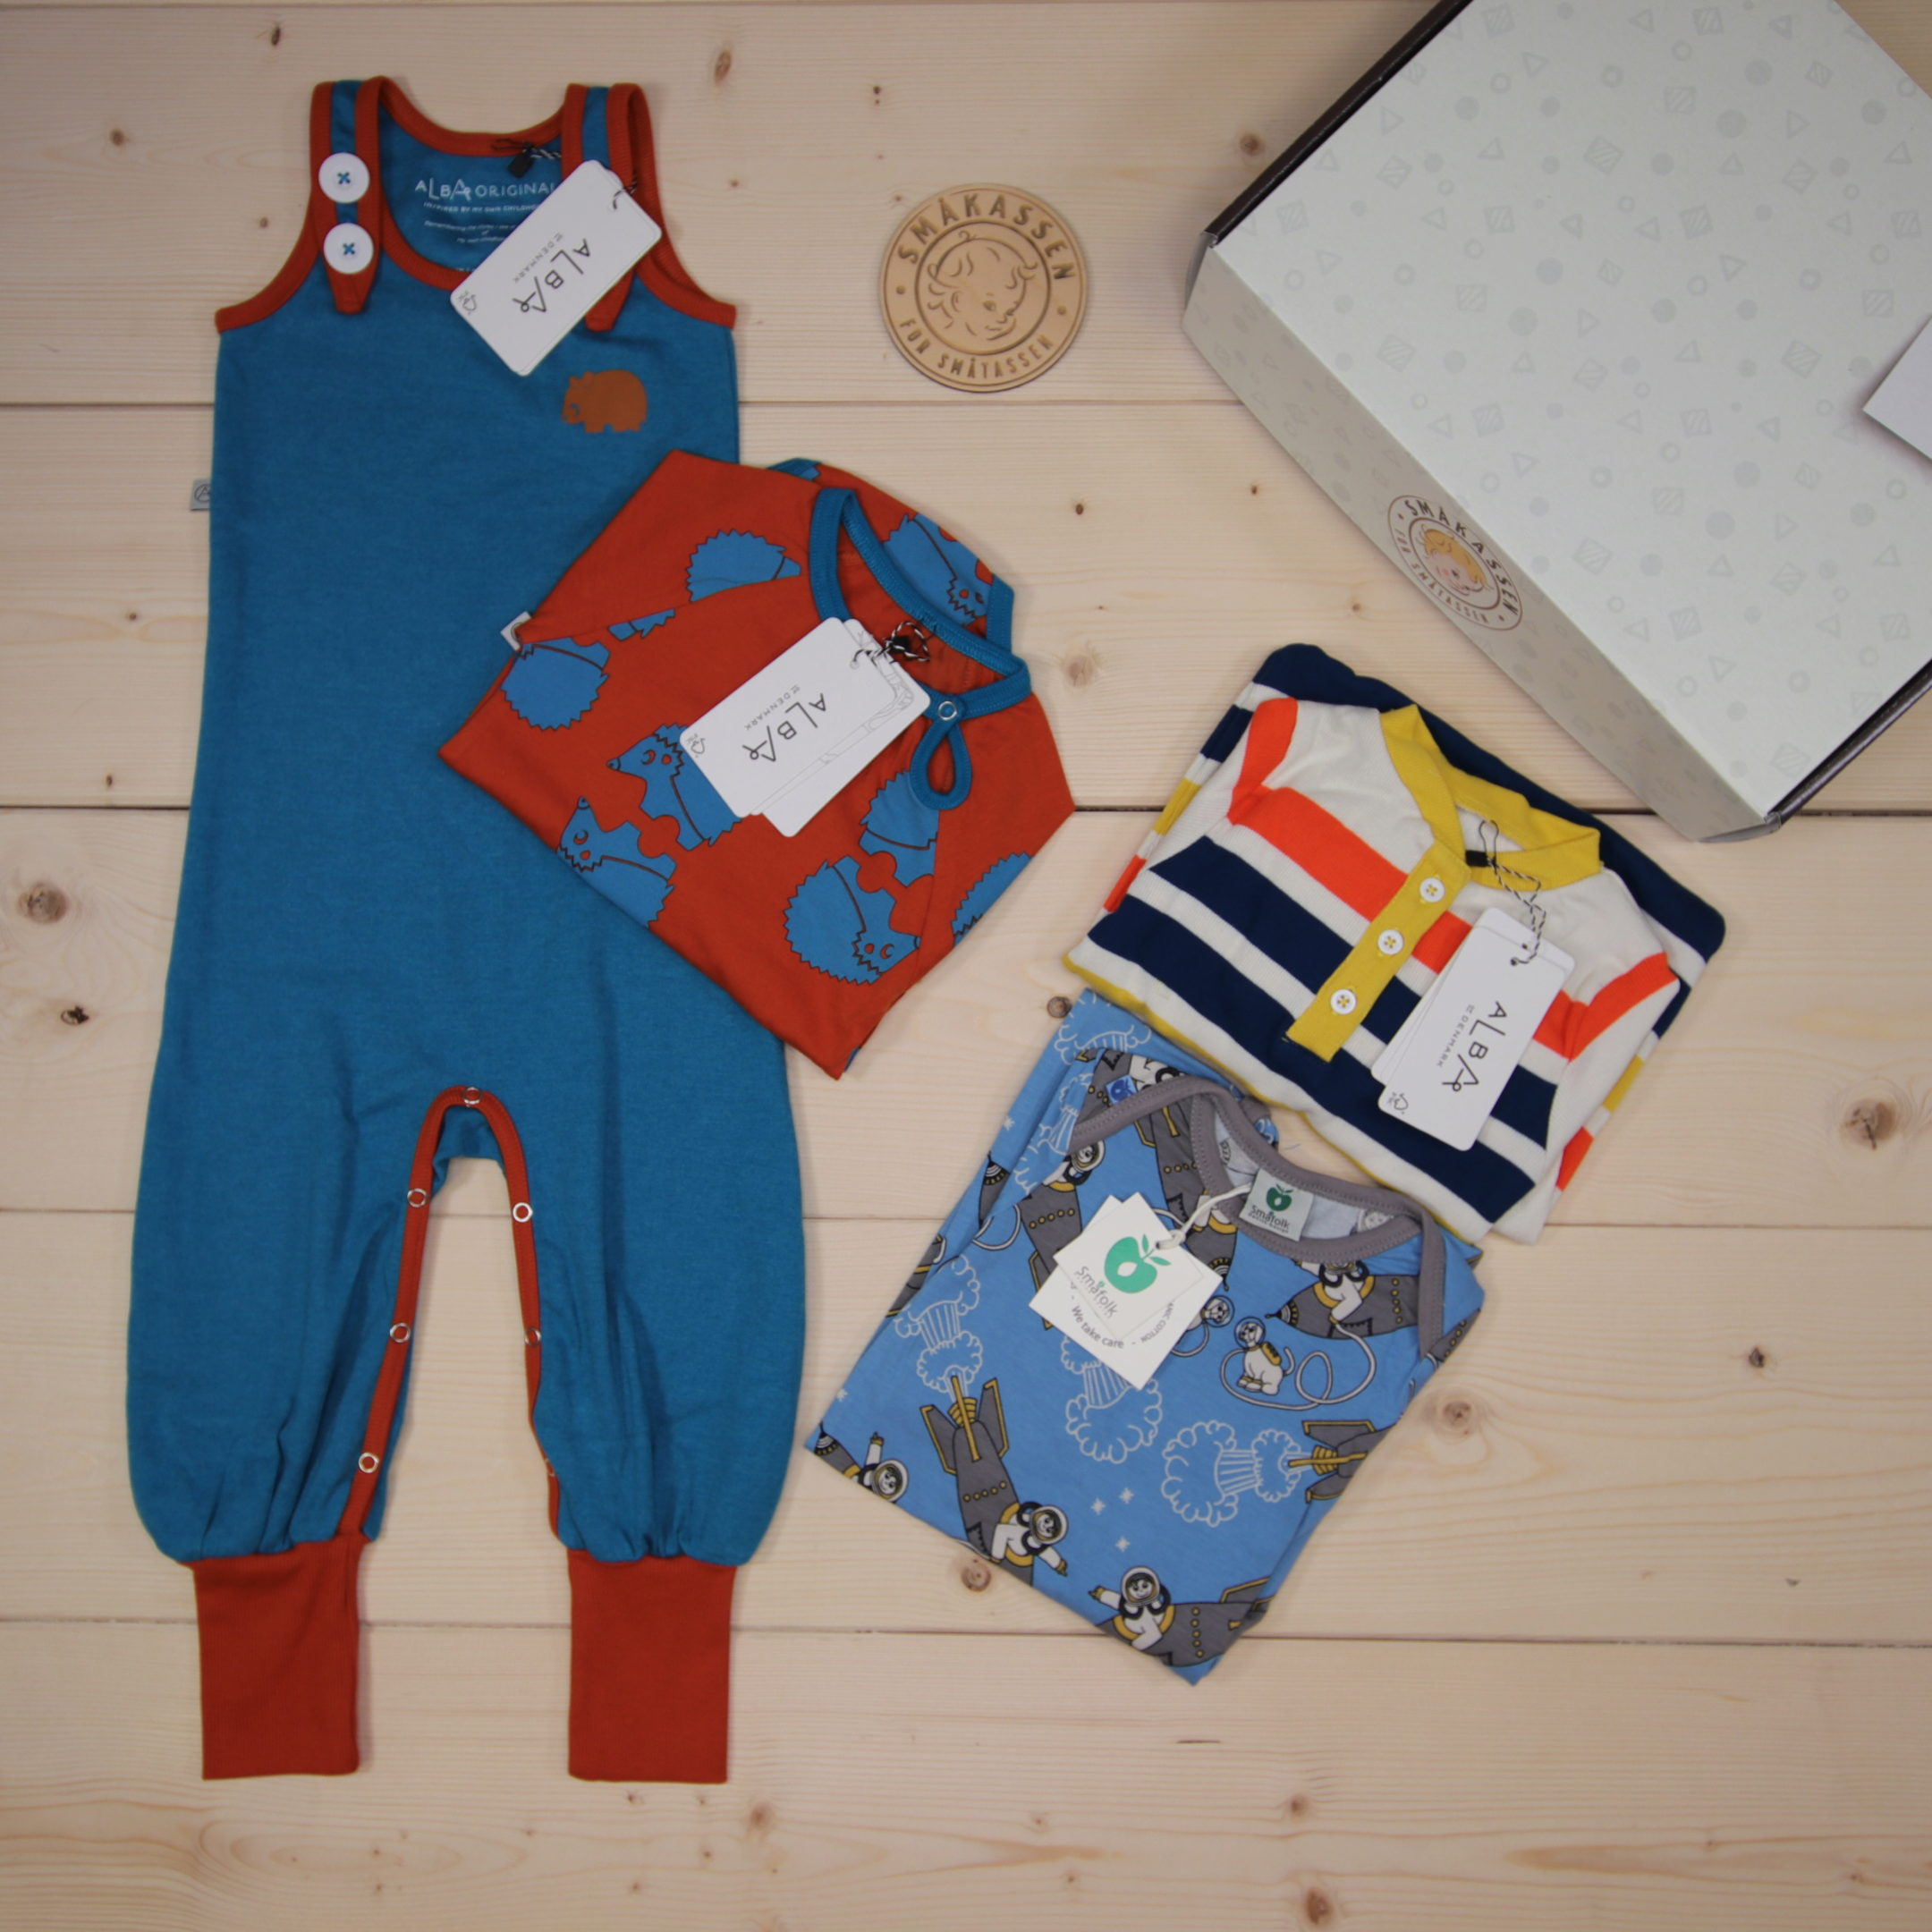 This is a 91 GBP* Småkassen that we prepared for a boy  in the styles cool and colorful in size 86